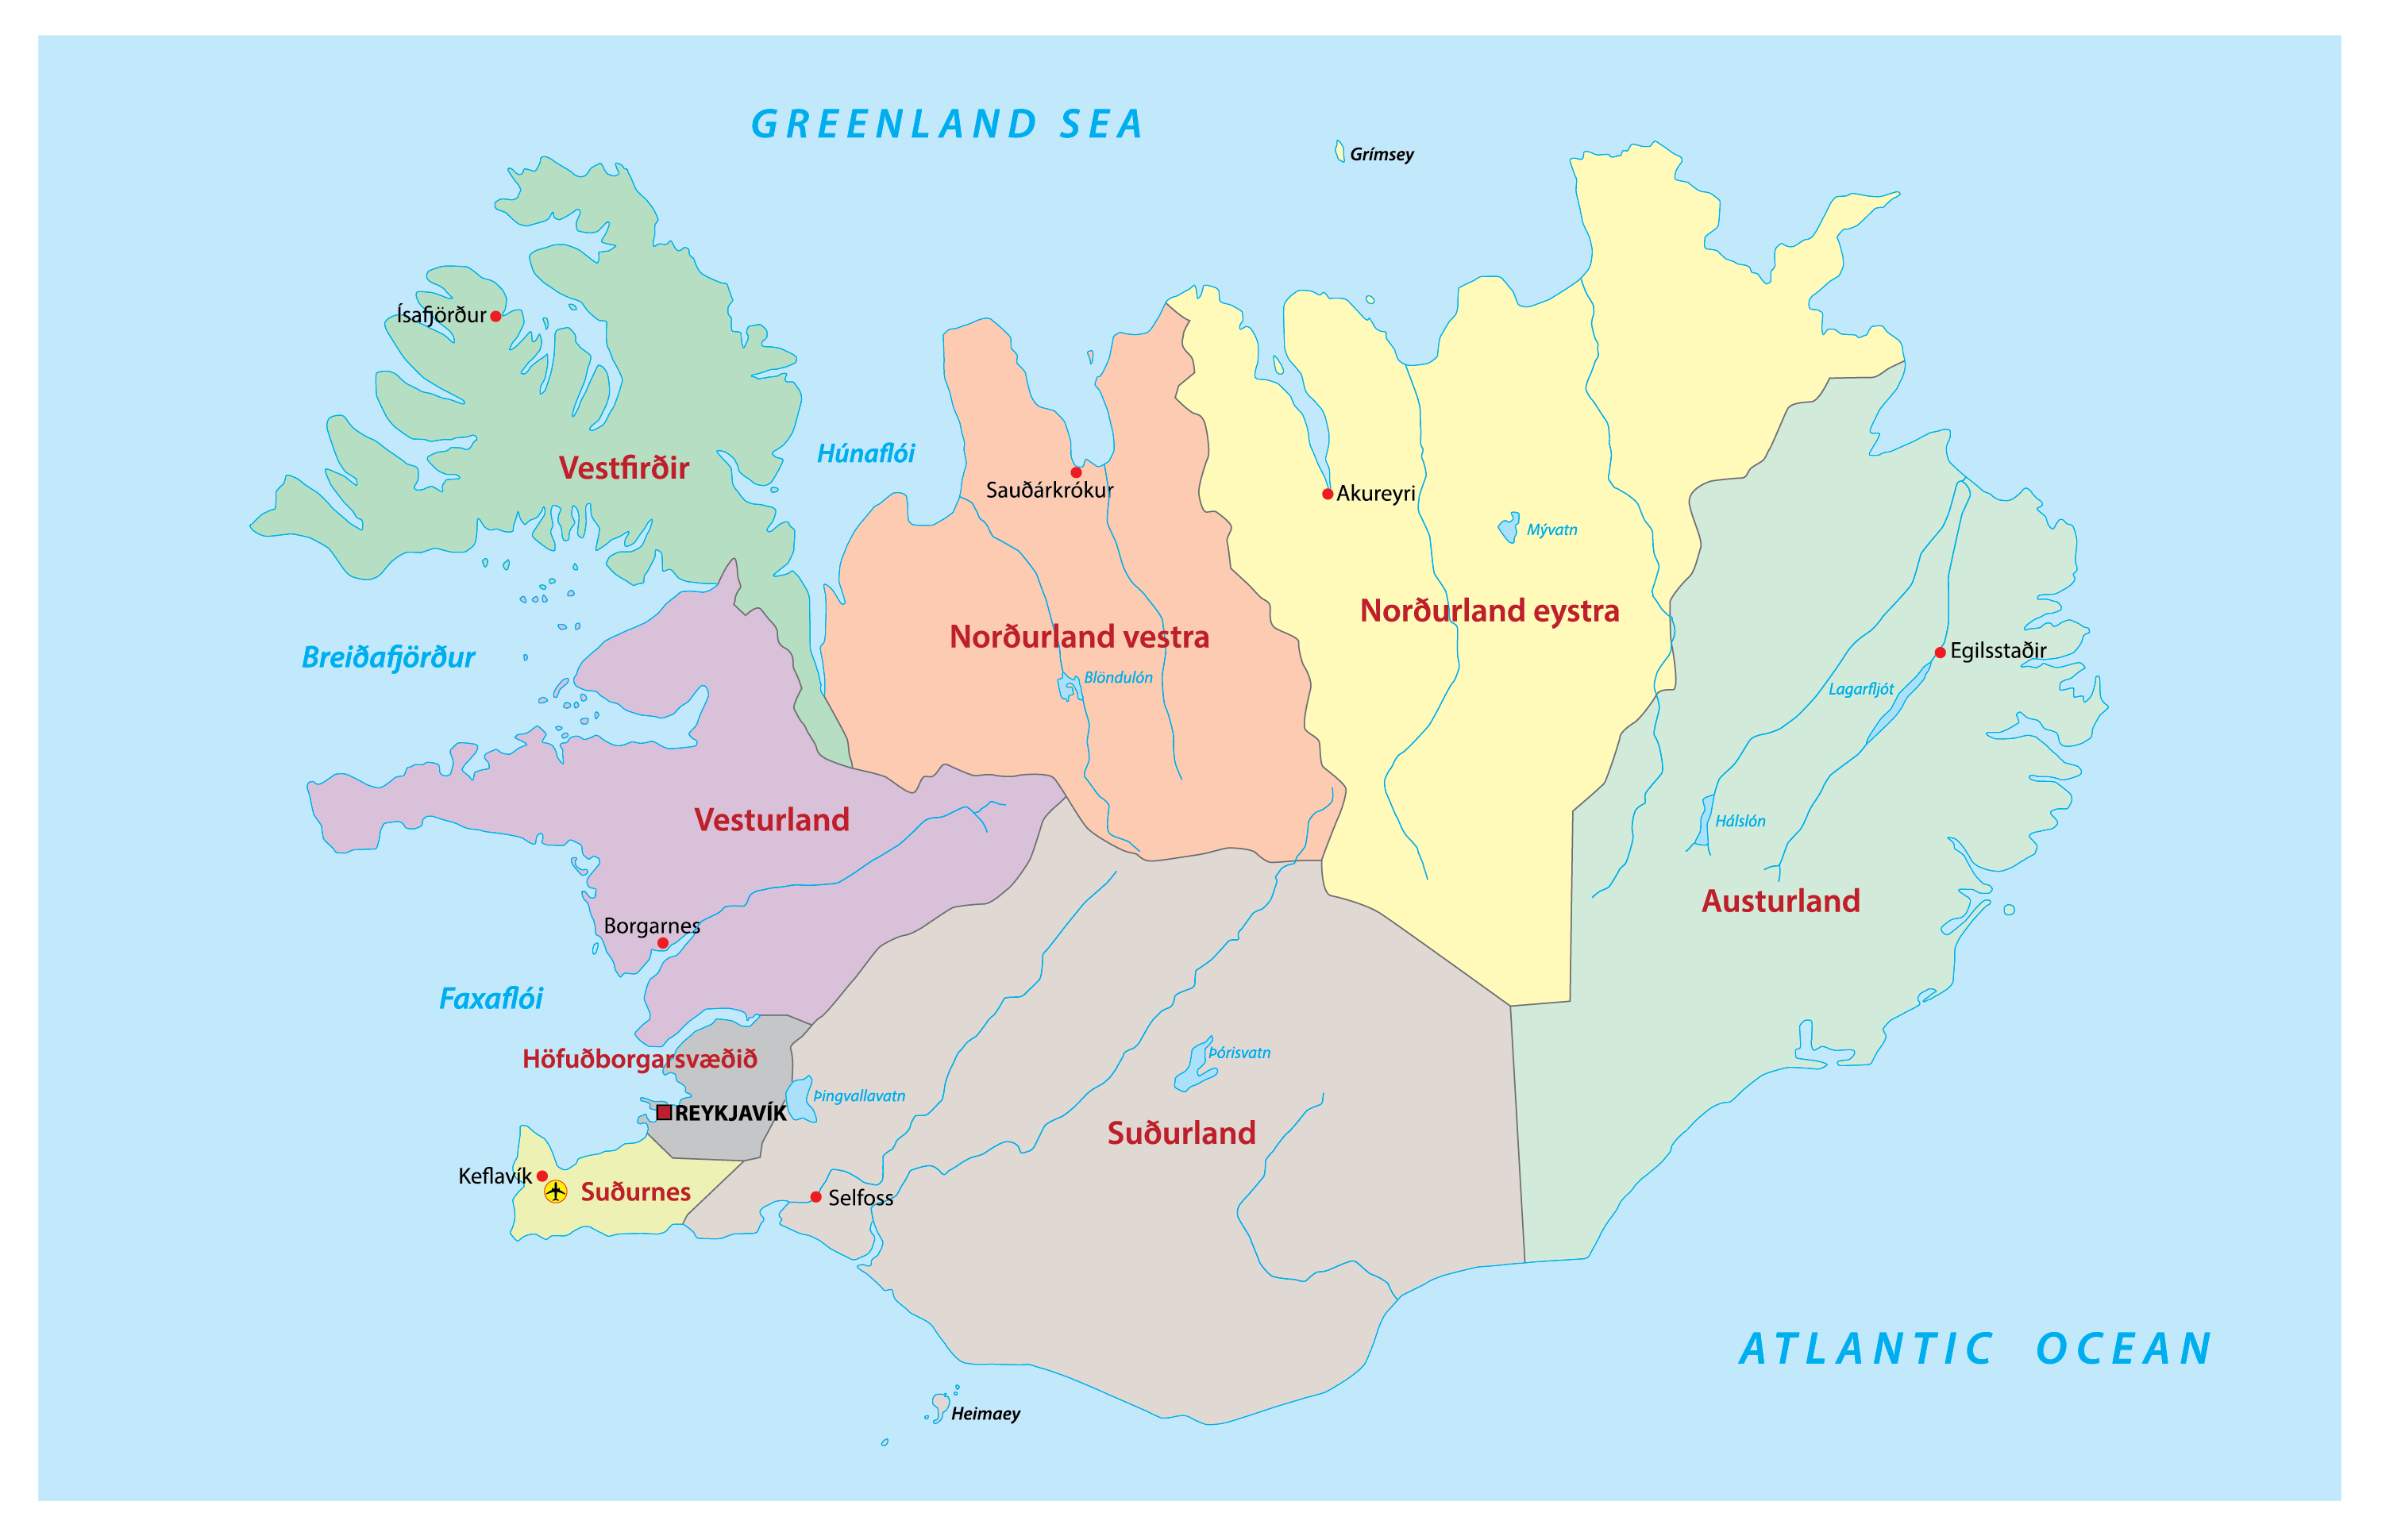 Political Map of Iceland showing regions of Iceland, made with the blank map of municipall boundaries in Iceland. The enclosed white areas are glaciers, and not divided into municipal regions. Image credit: Wikimedia.org